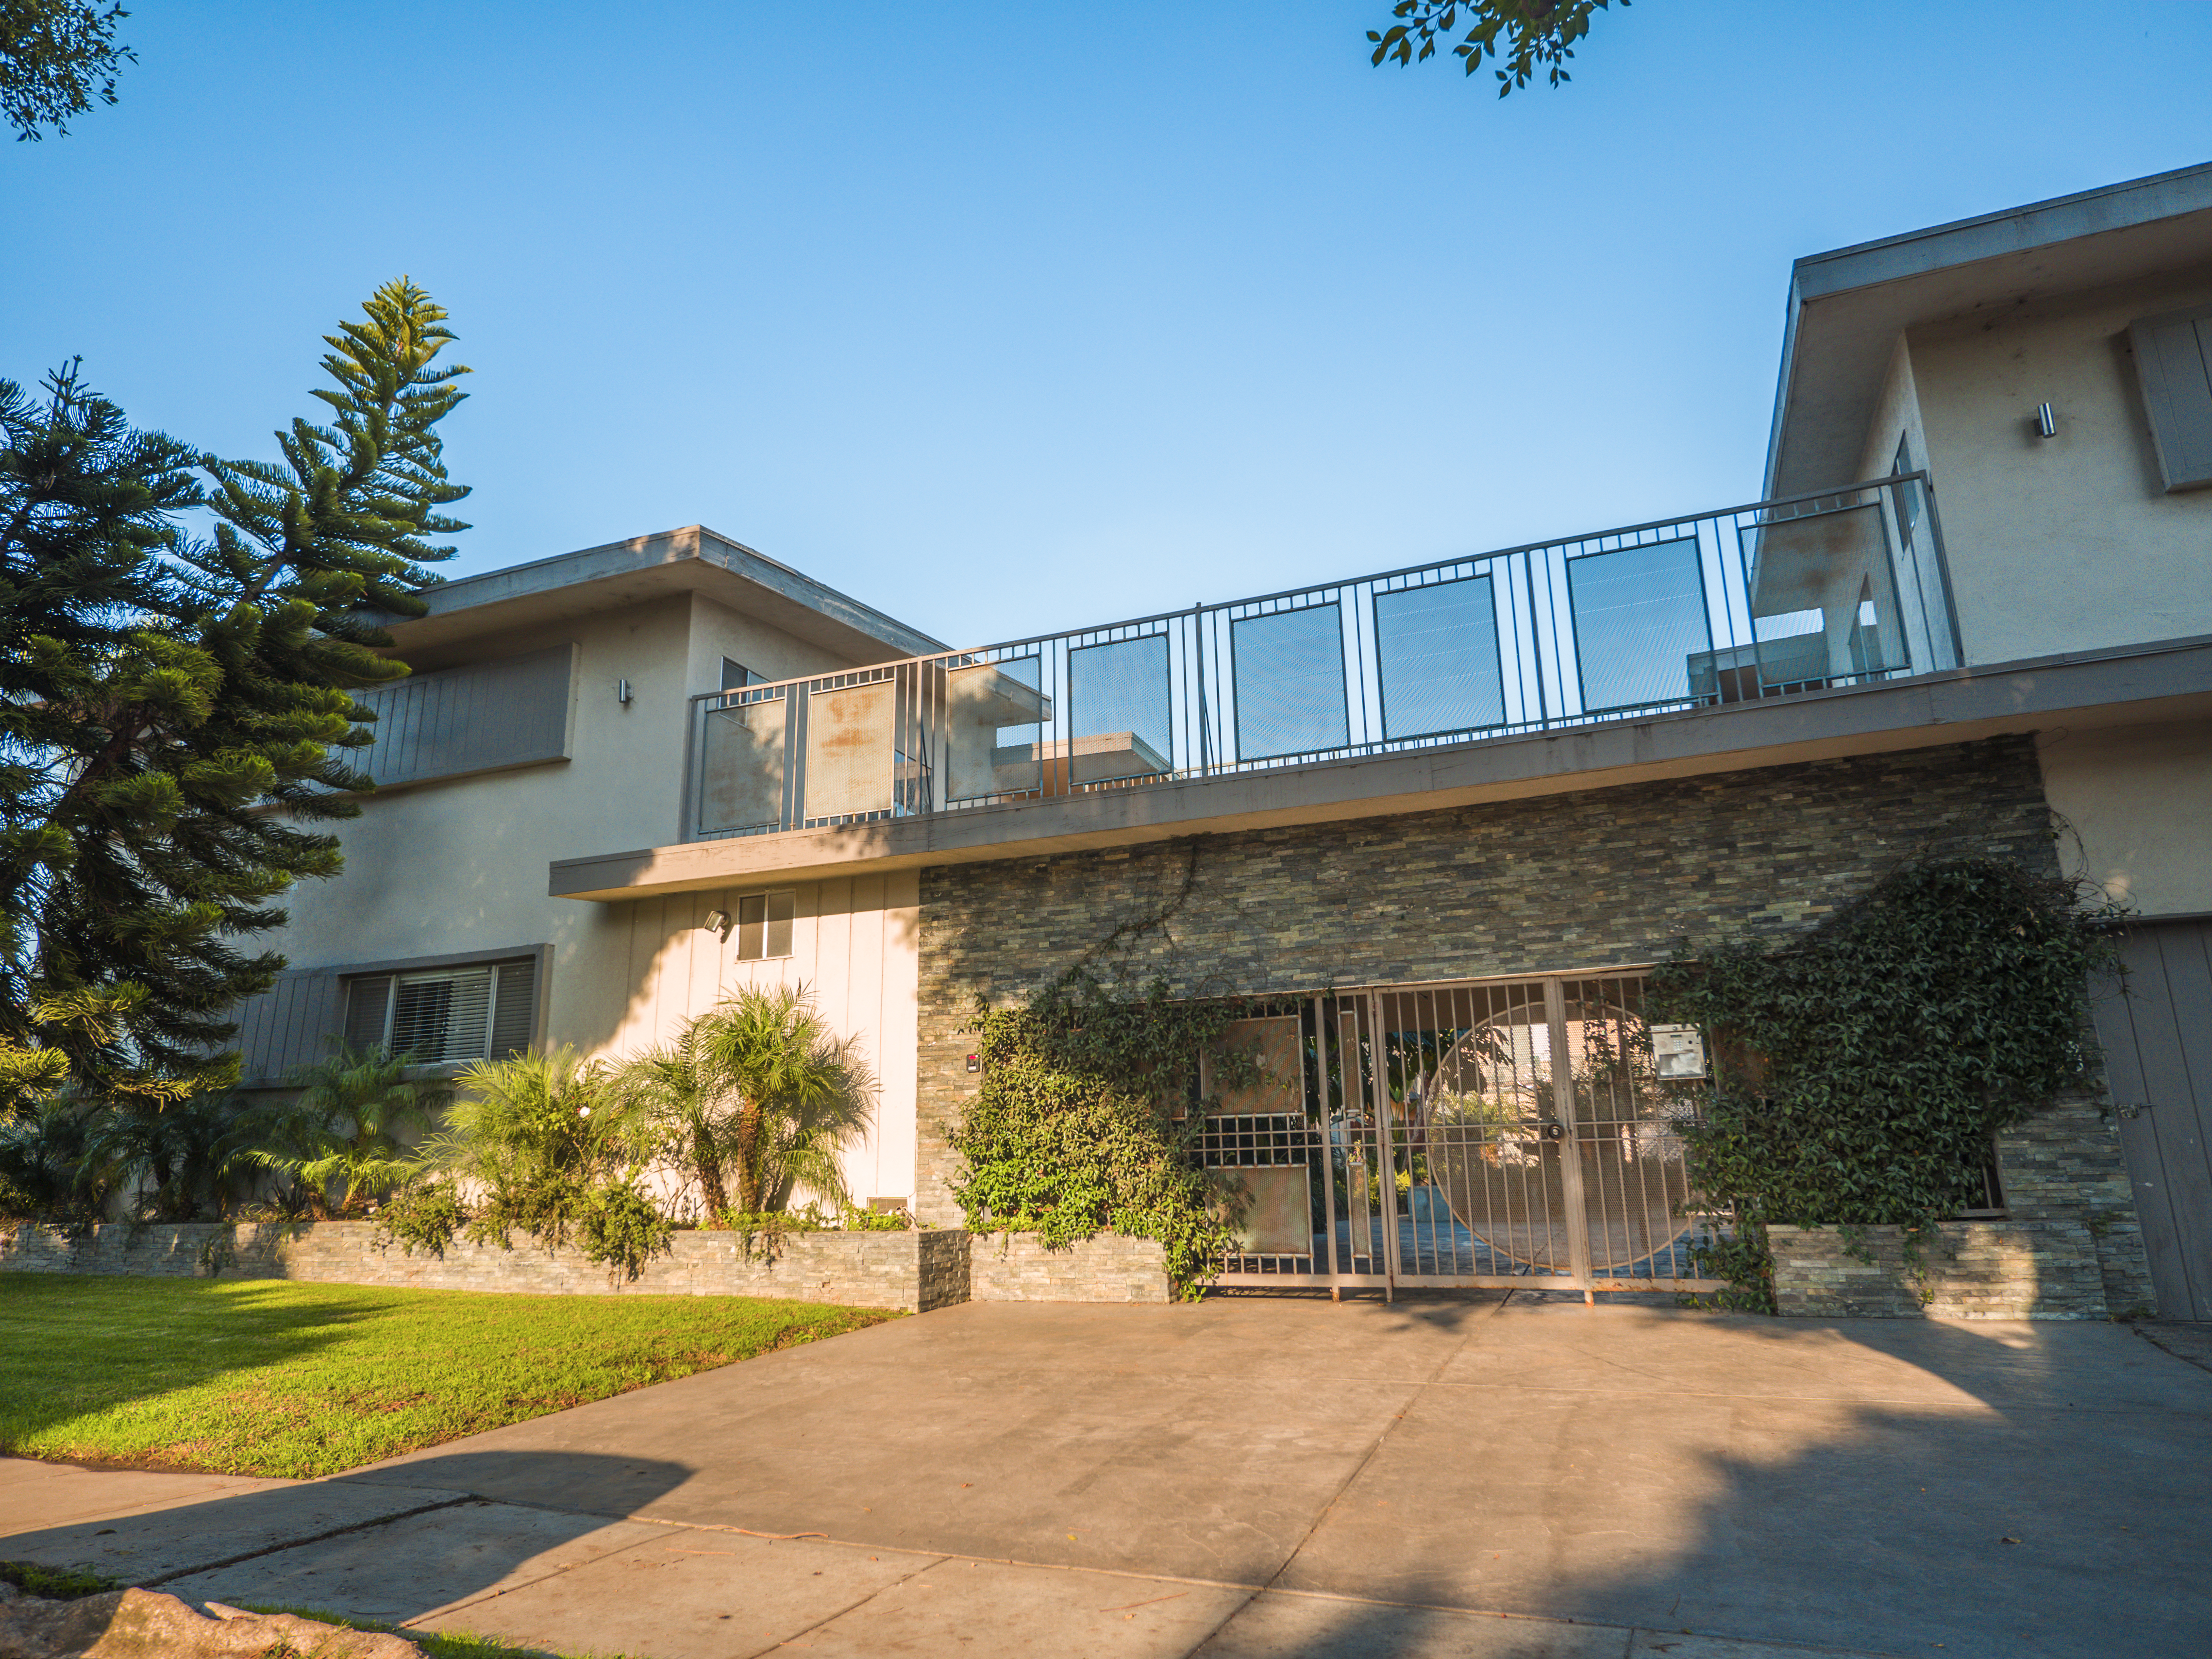 1863 10th St., Santa Monica, CA 90404